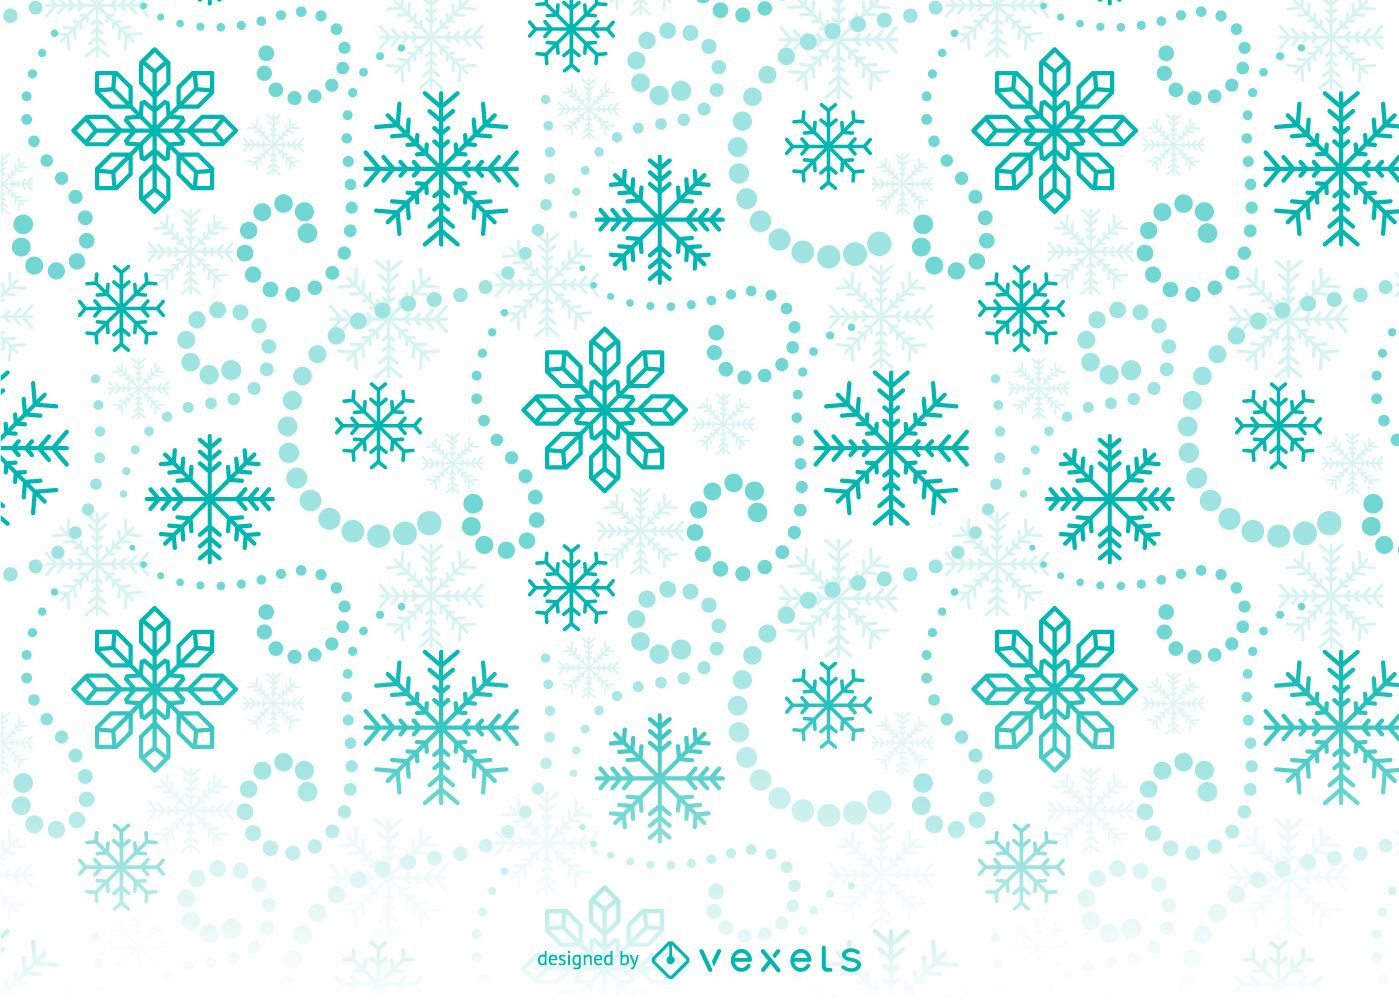 Green Snowflakes Background Pattern - Vector download